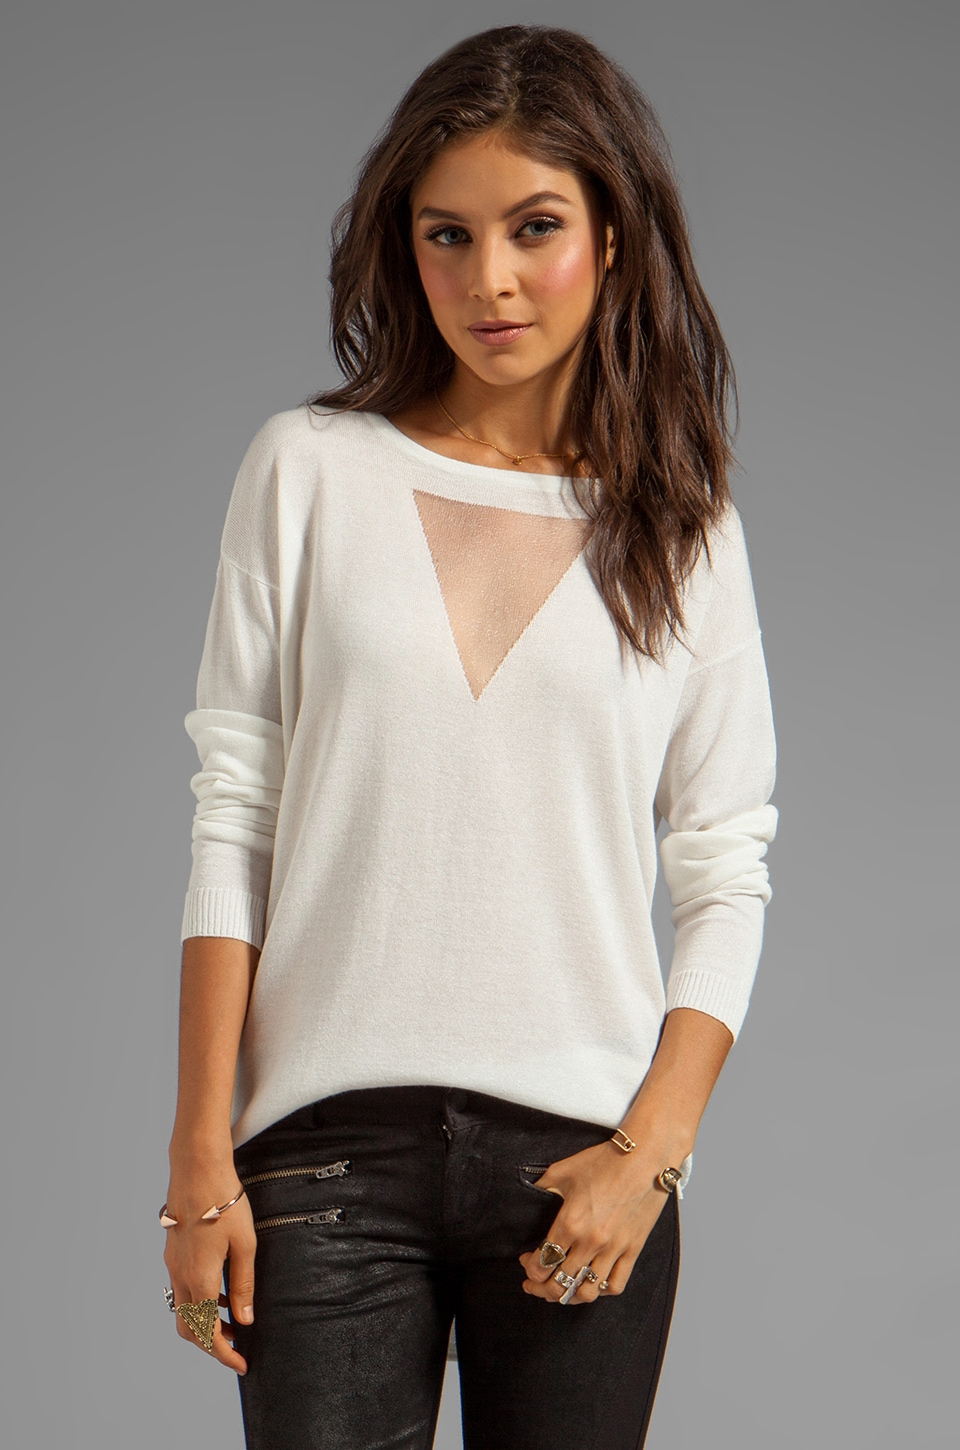 Bardot Jaxon Lurex Jumper in Ivory